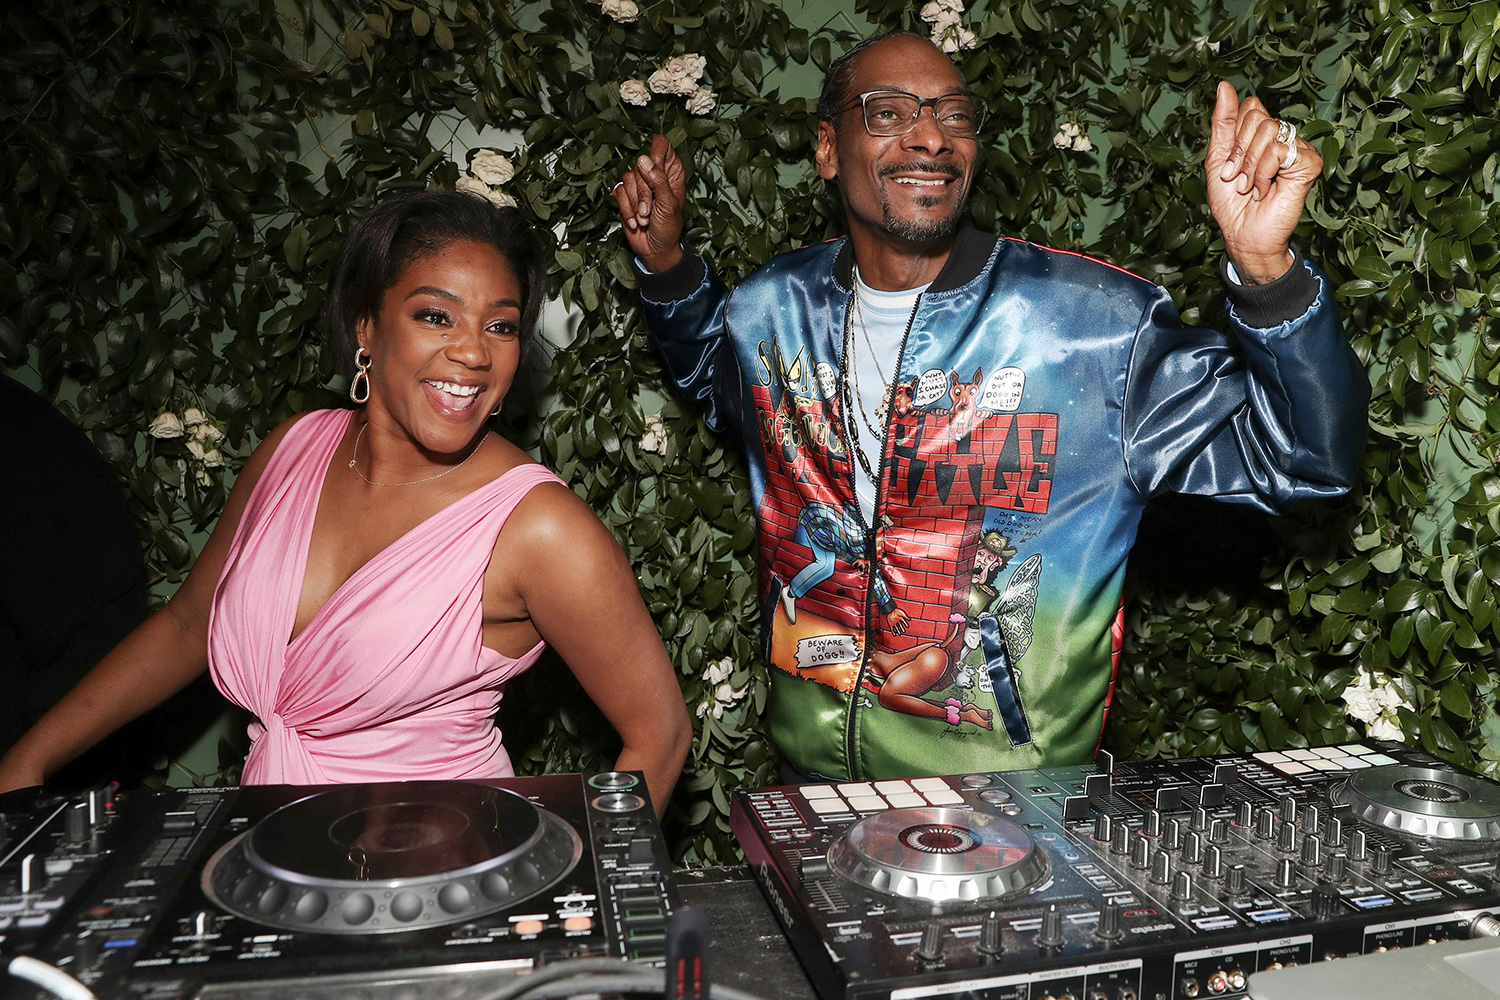 Tiffany Haddish and Snoop Dogg